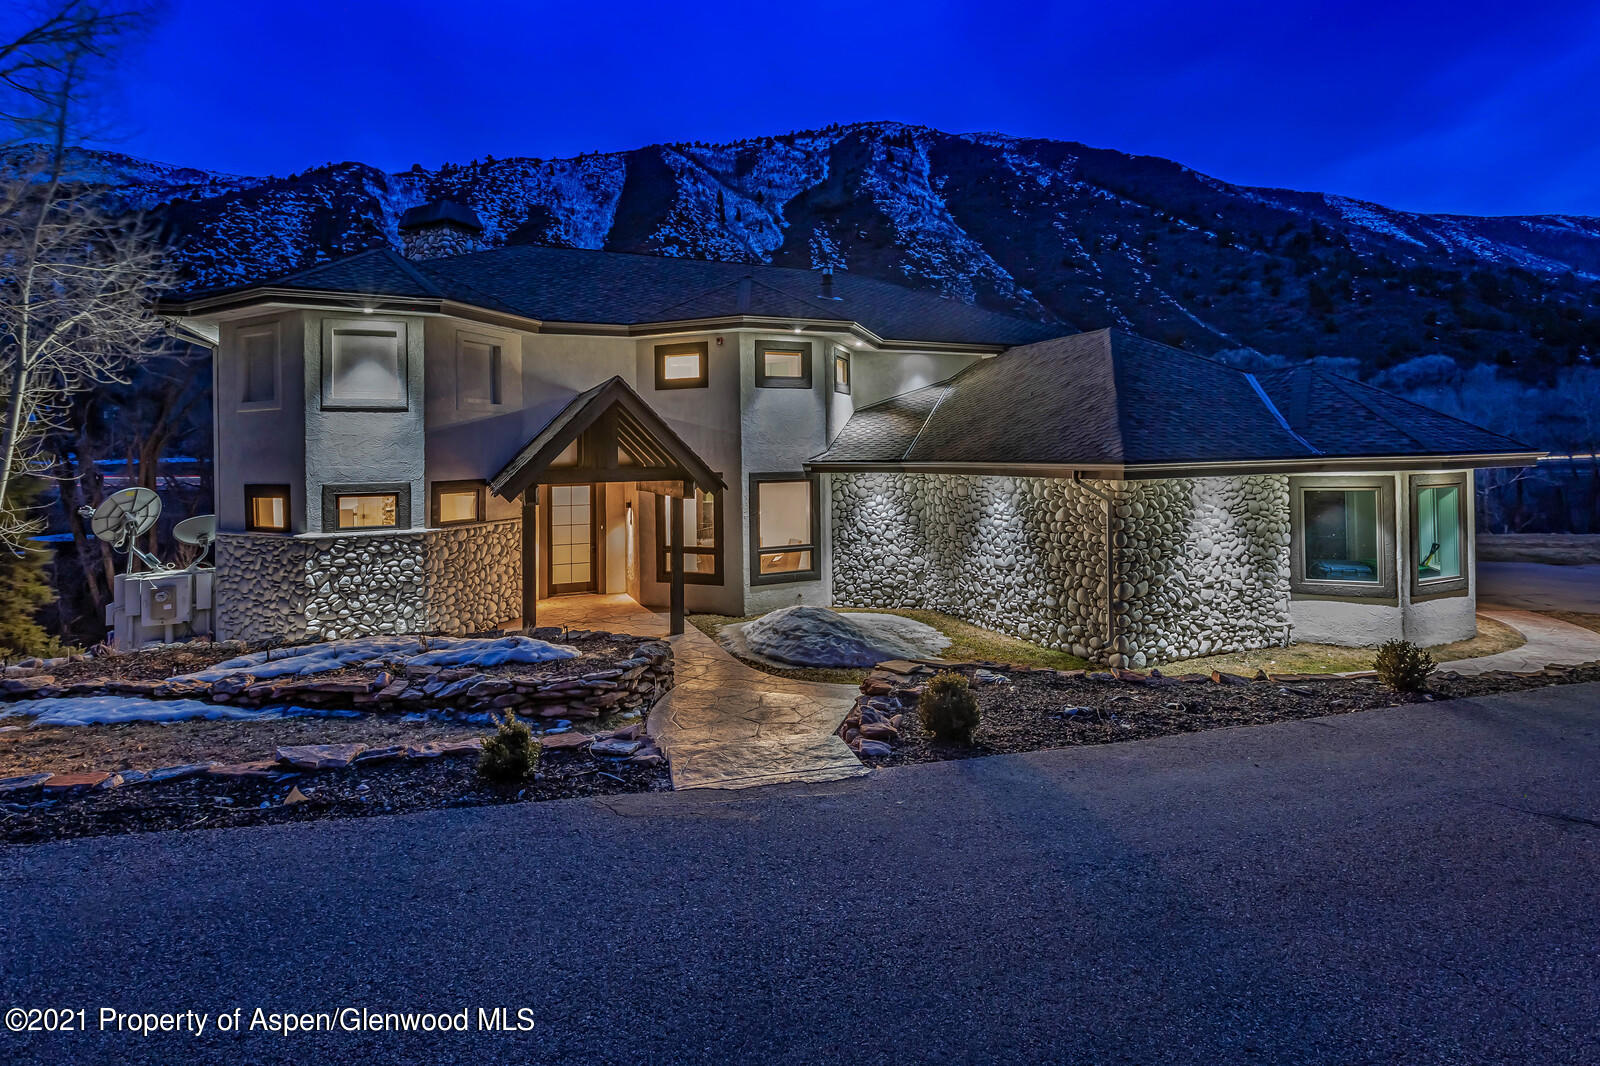 A rare refuge for fly fishing enthusiasts or a legacy mountain home for a family to enjoy for generations. Spacious riverfront home with a complete interior and exterior renovation in 2019. Move-in ready with fresh, clean interiors. The main level features an open floor plan, statement river rock fireplace, two dining areas, a den/bedroom and covered porch. The large top floor master suite features a bar area, private deck, gas fireplace  laundry room. On the lower level, entertain a large family or guests with 3 bedrooms, a theatre room, and an entertainment room. Private fishing access to exceptional fishing holes in the Roaring Fork River. No HOA. Excellent rental history. Located just 5 minutes to the Roaring Fork Club and 20 minutes to skiing and events in Aspen/Snowmass